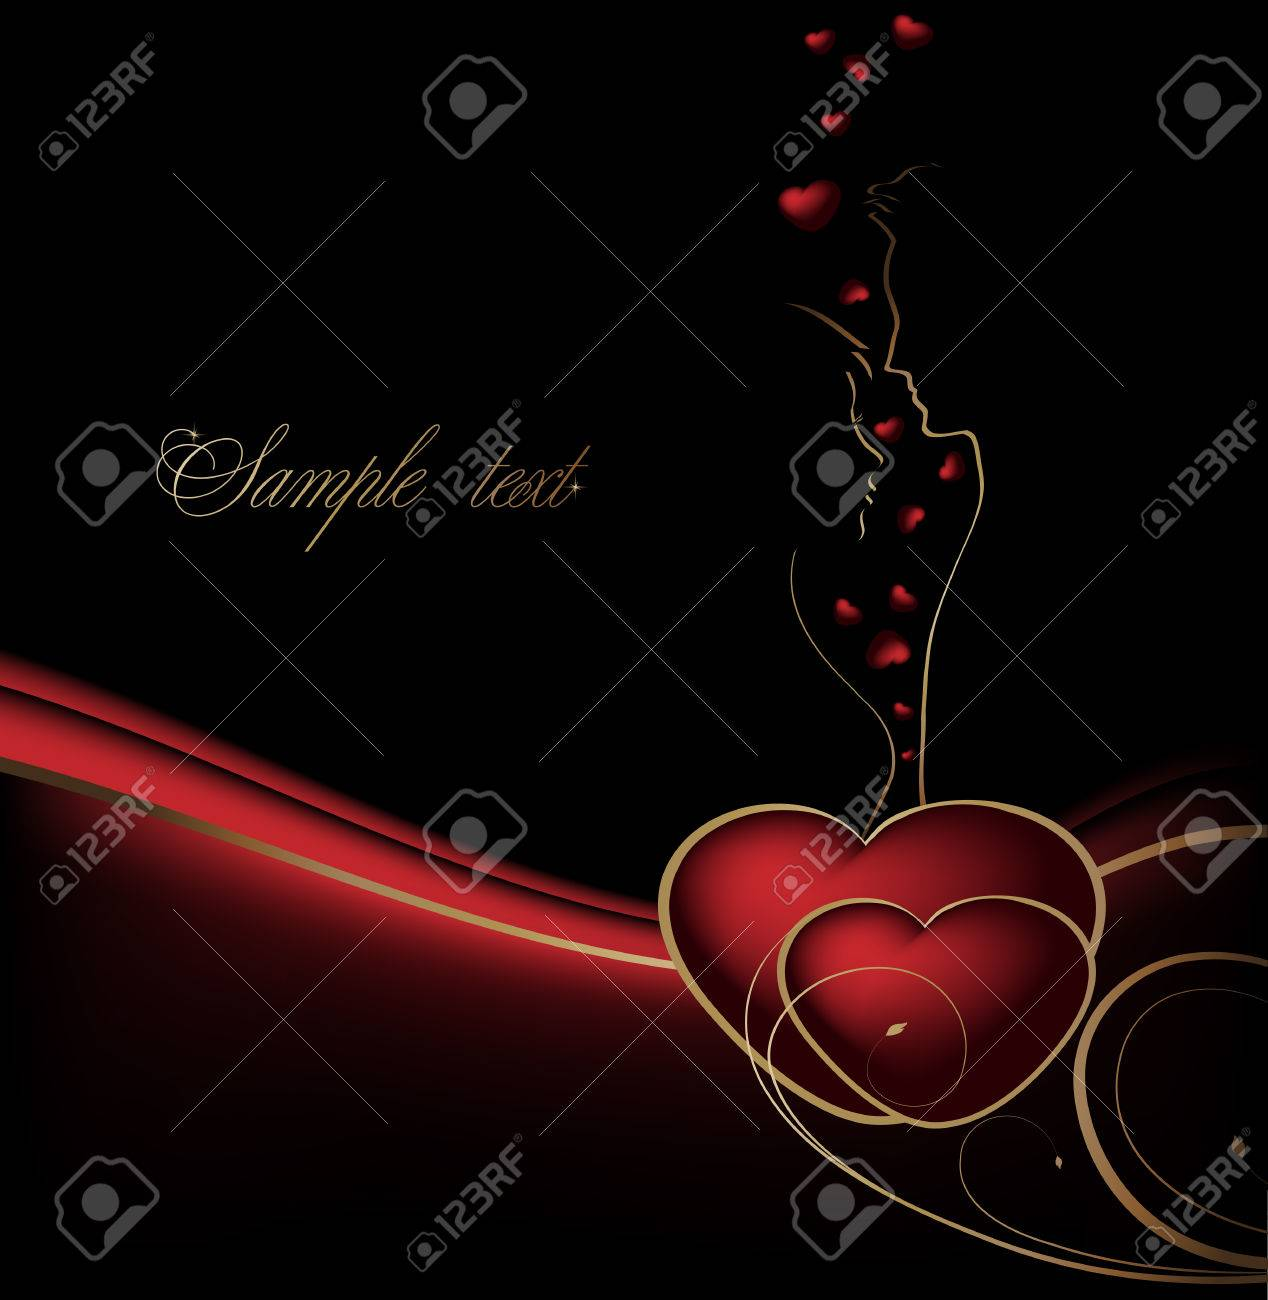 Valentines black, red and gold background with hearts and lovers - 8549073